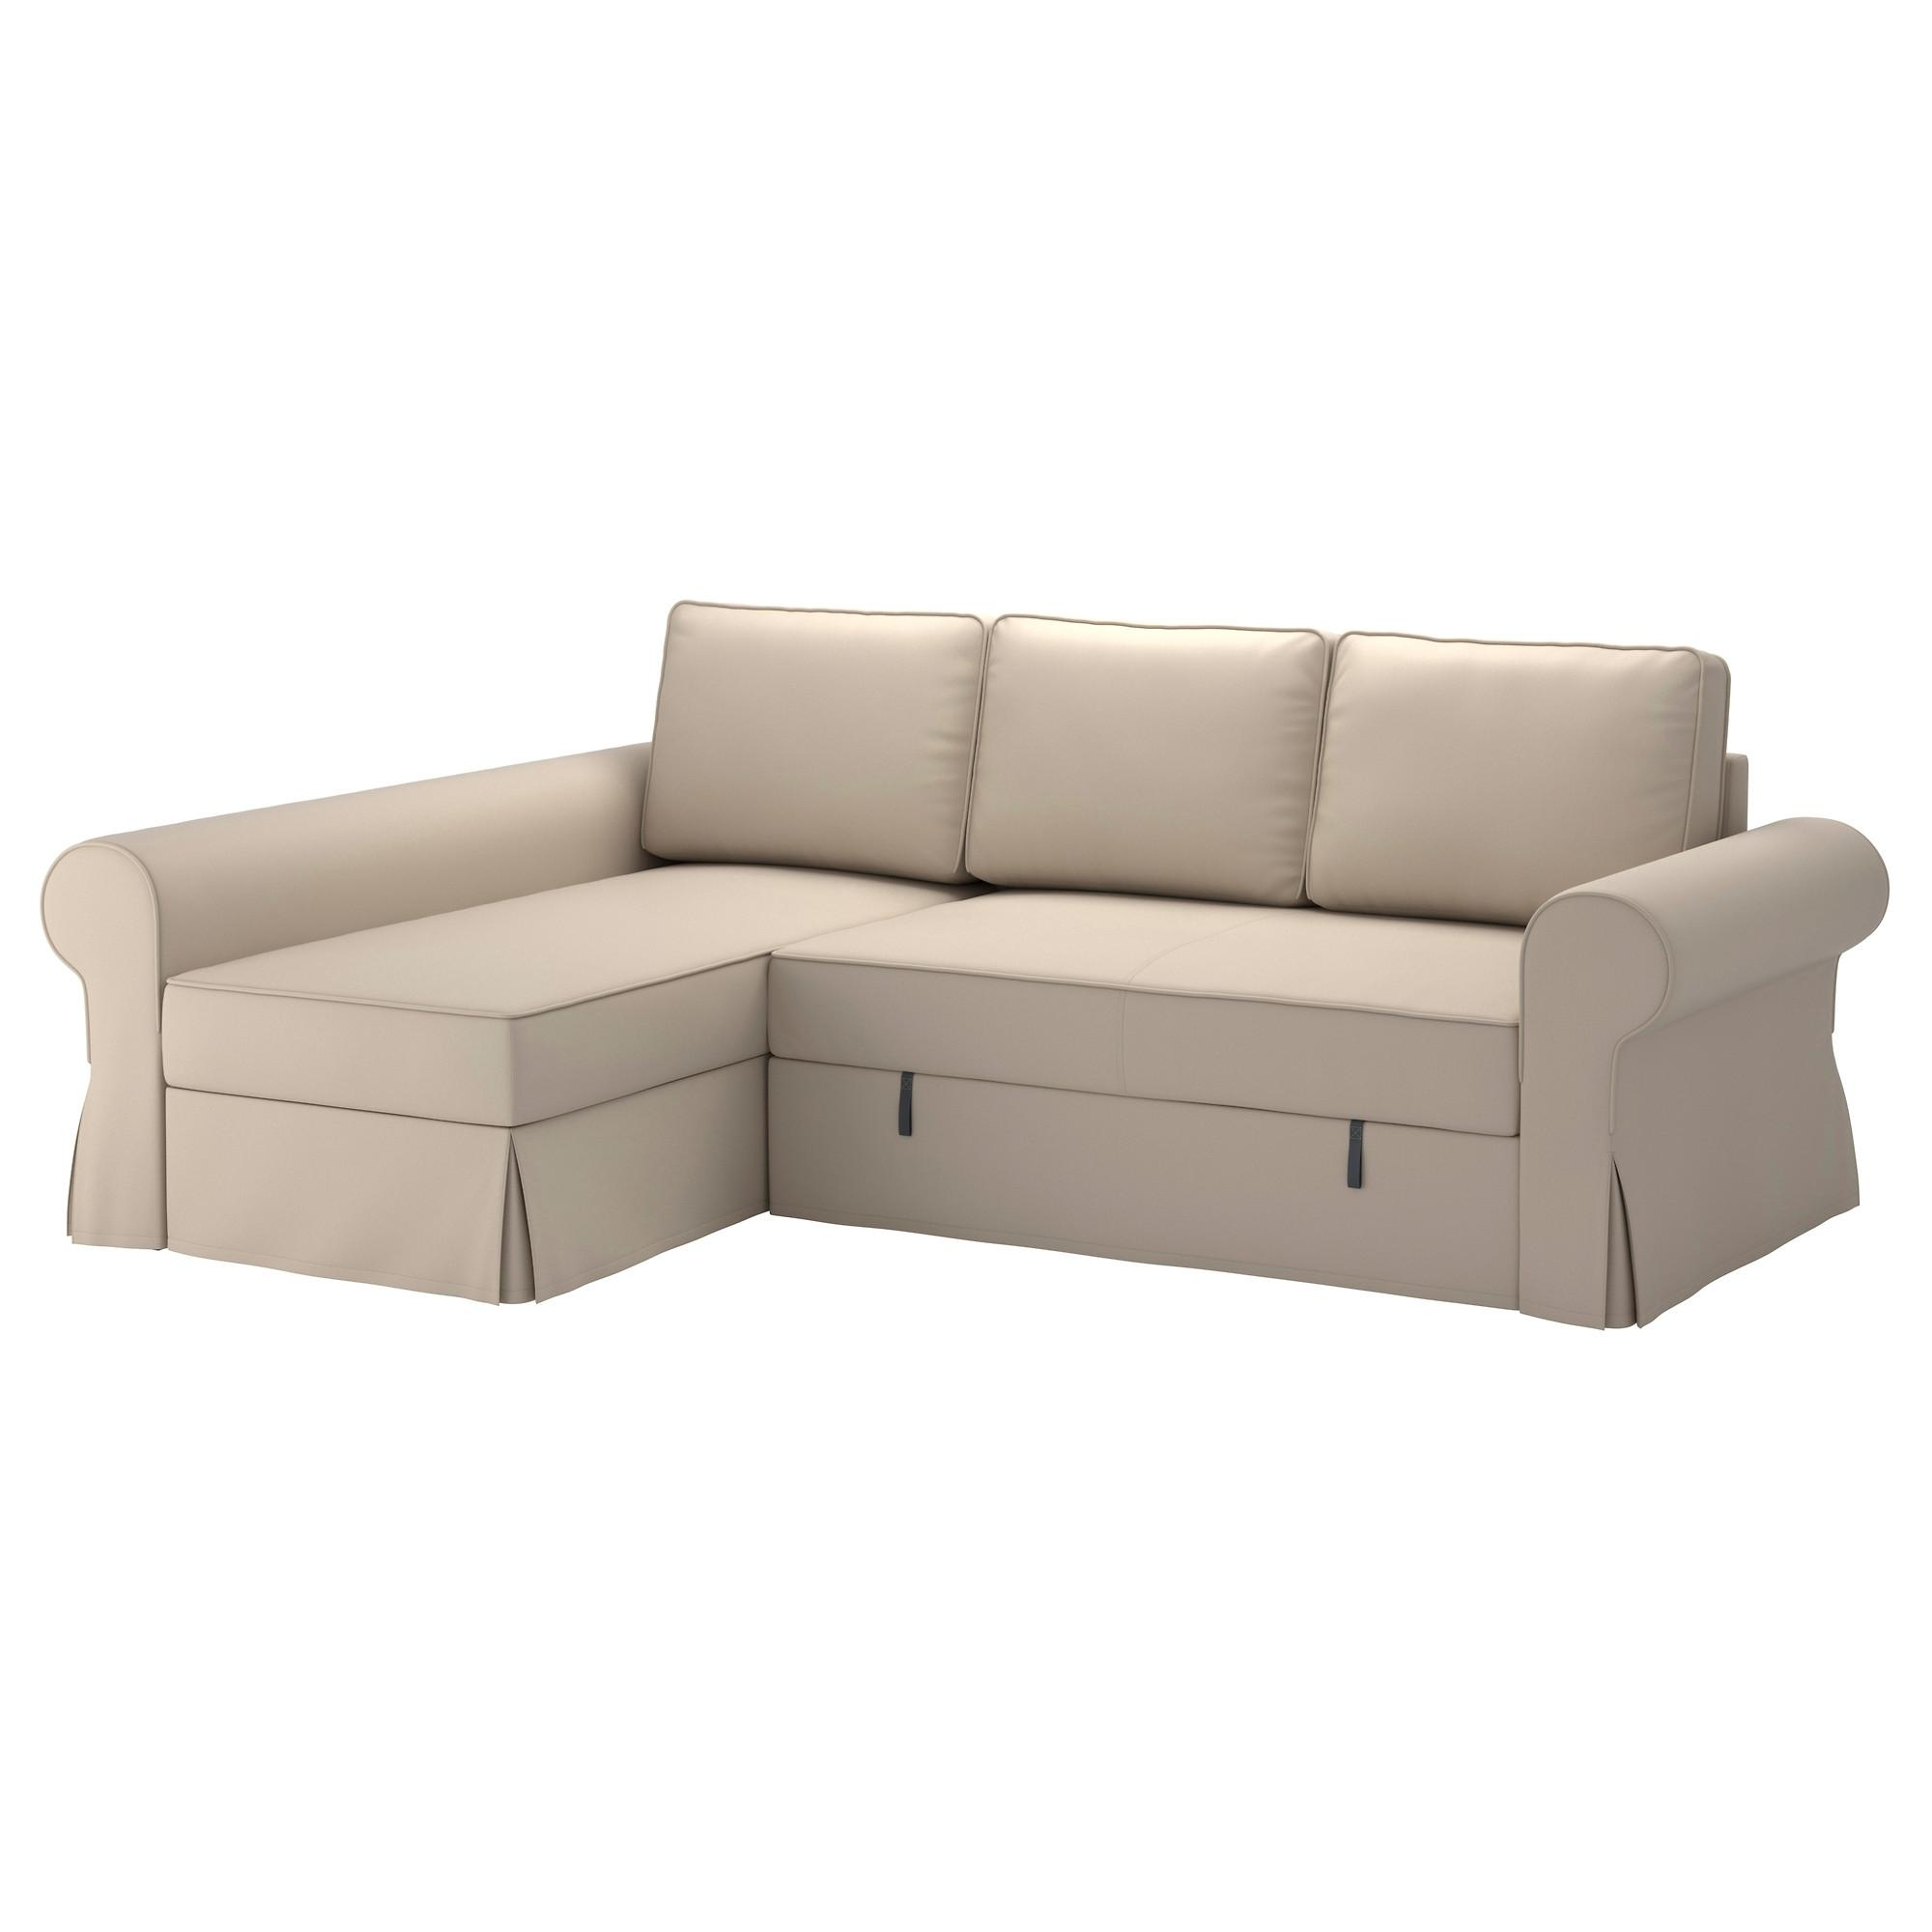 Backabro Sofa Bed With Chaise Longue Ramna Beige – Ikea In Chaise Longue Sofa Beds (View 5 of 20)